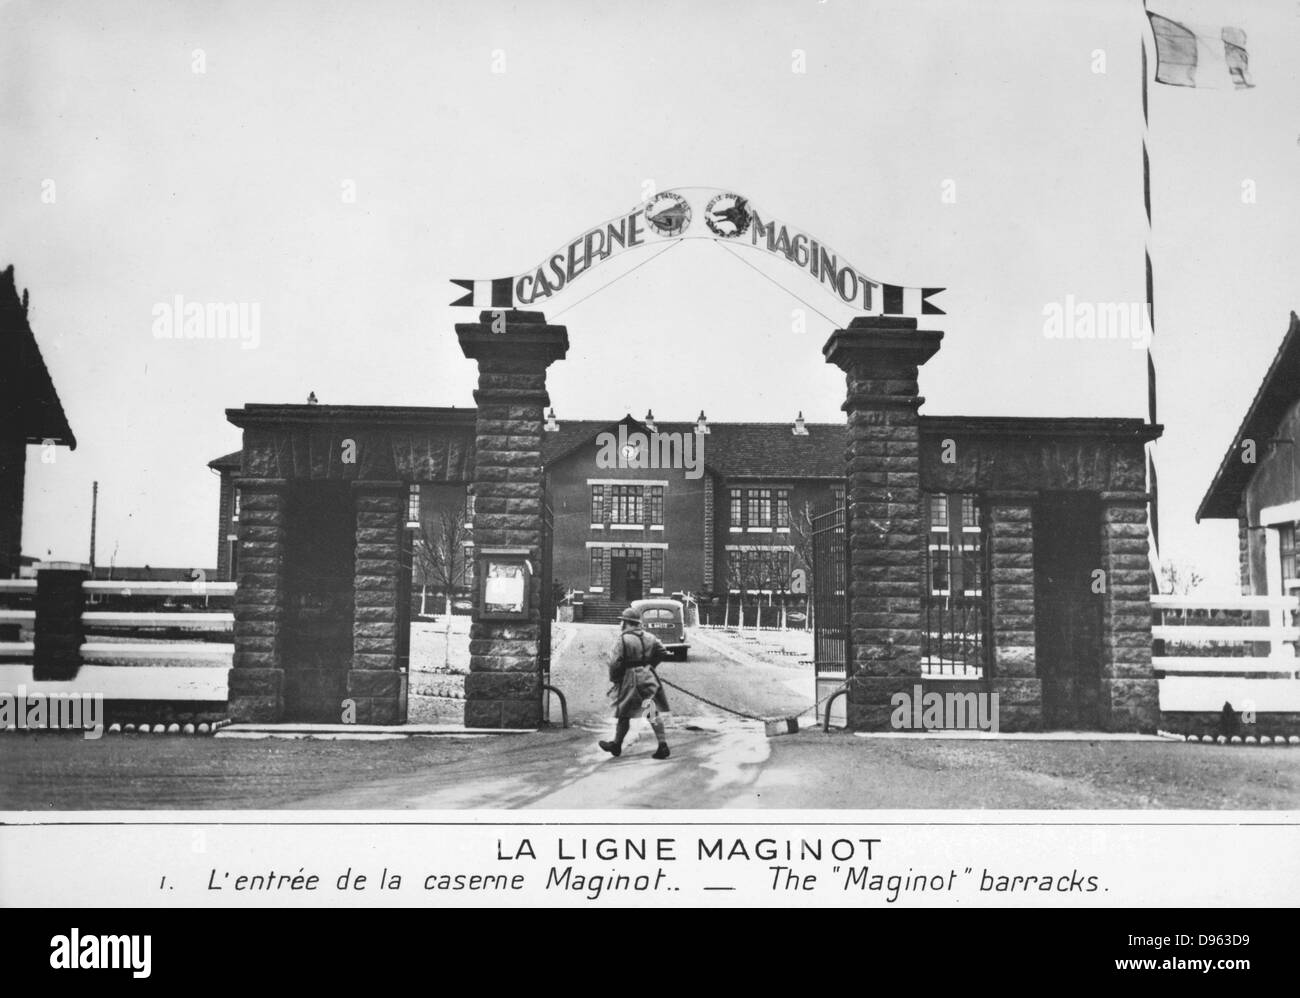 World War 2: The Maginot Line, French defensive installation. The entrance to the Maginot barracks. - Stock Image